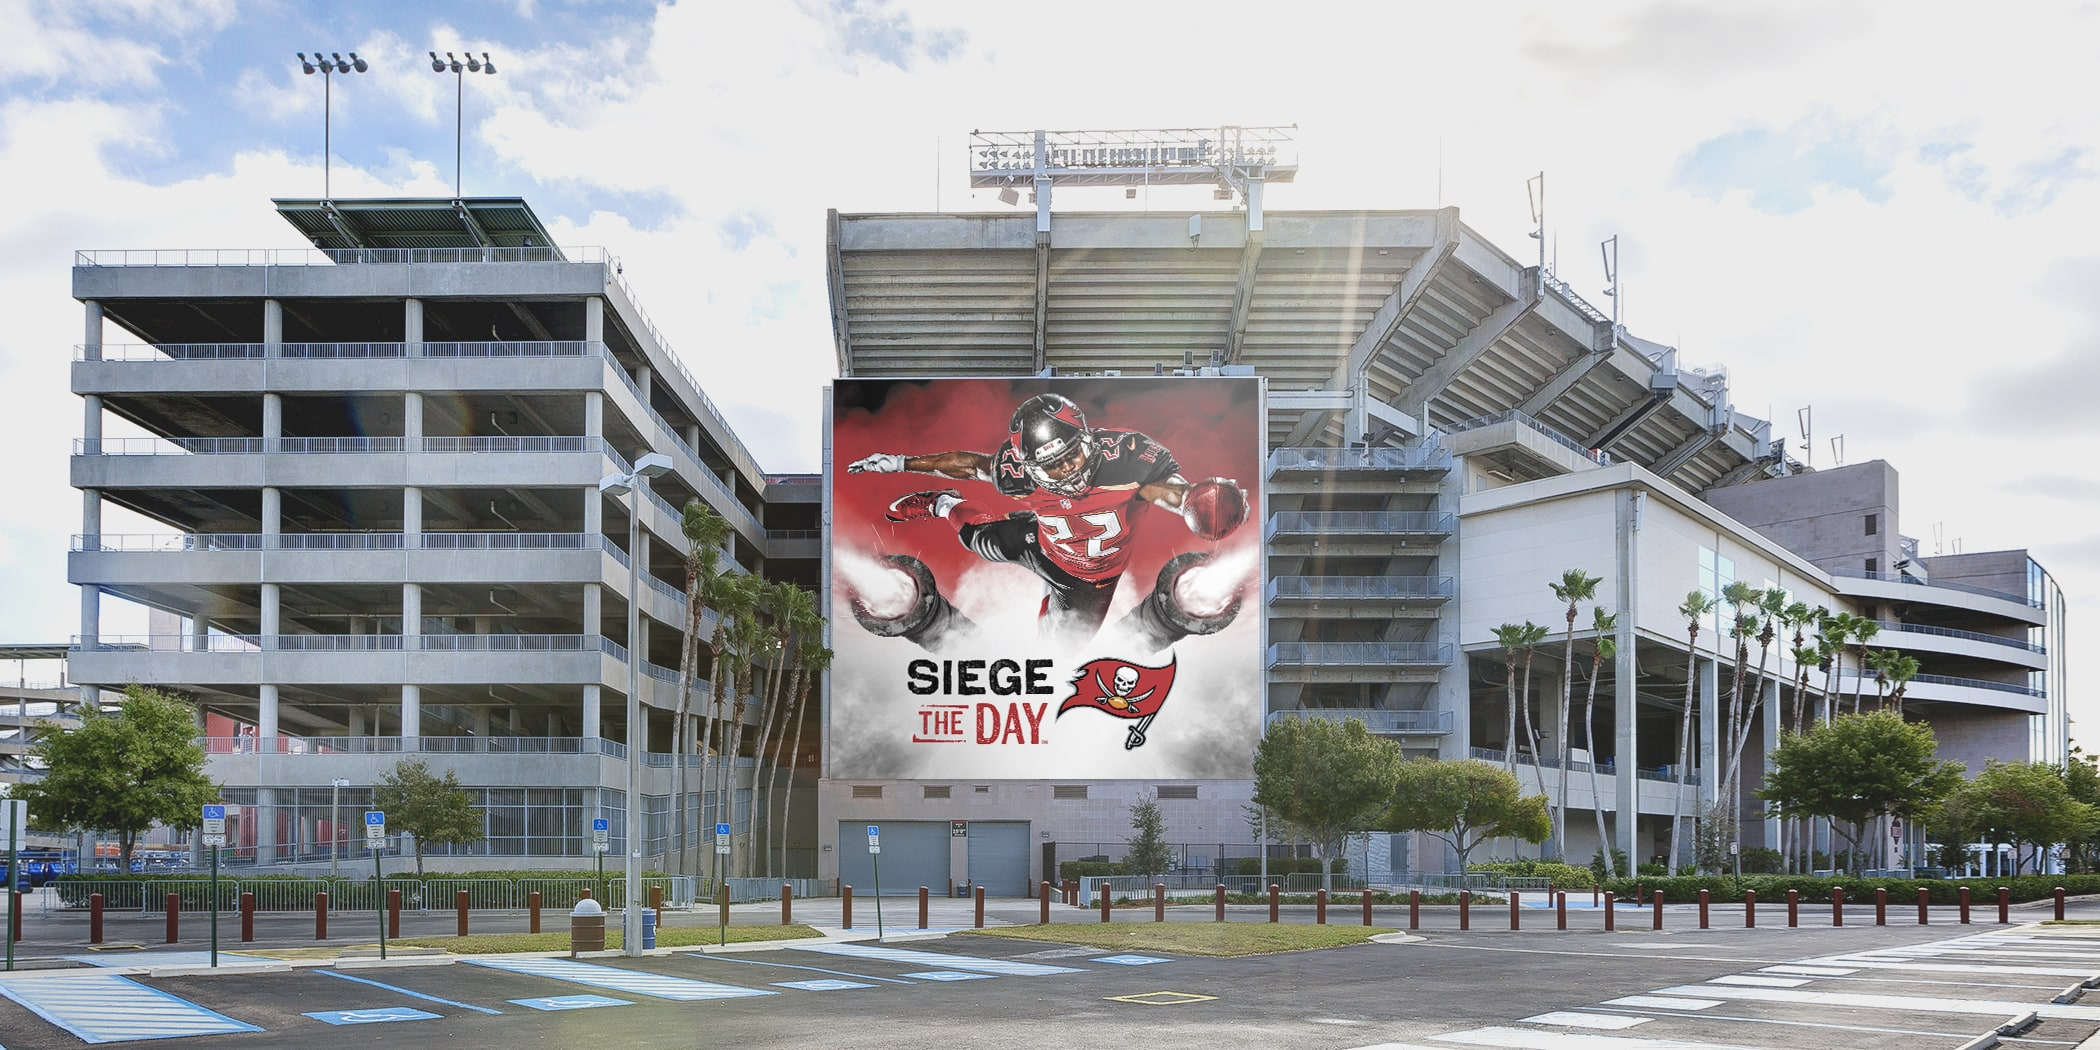 Photo of Siege the Day poster on the side of Raymond James Stadium